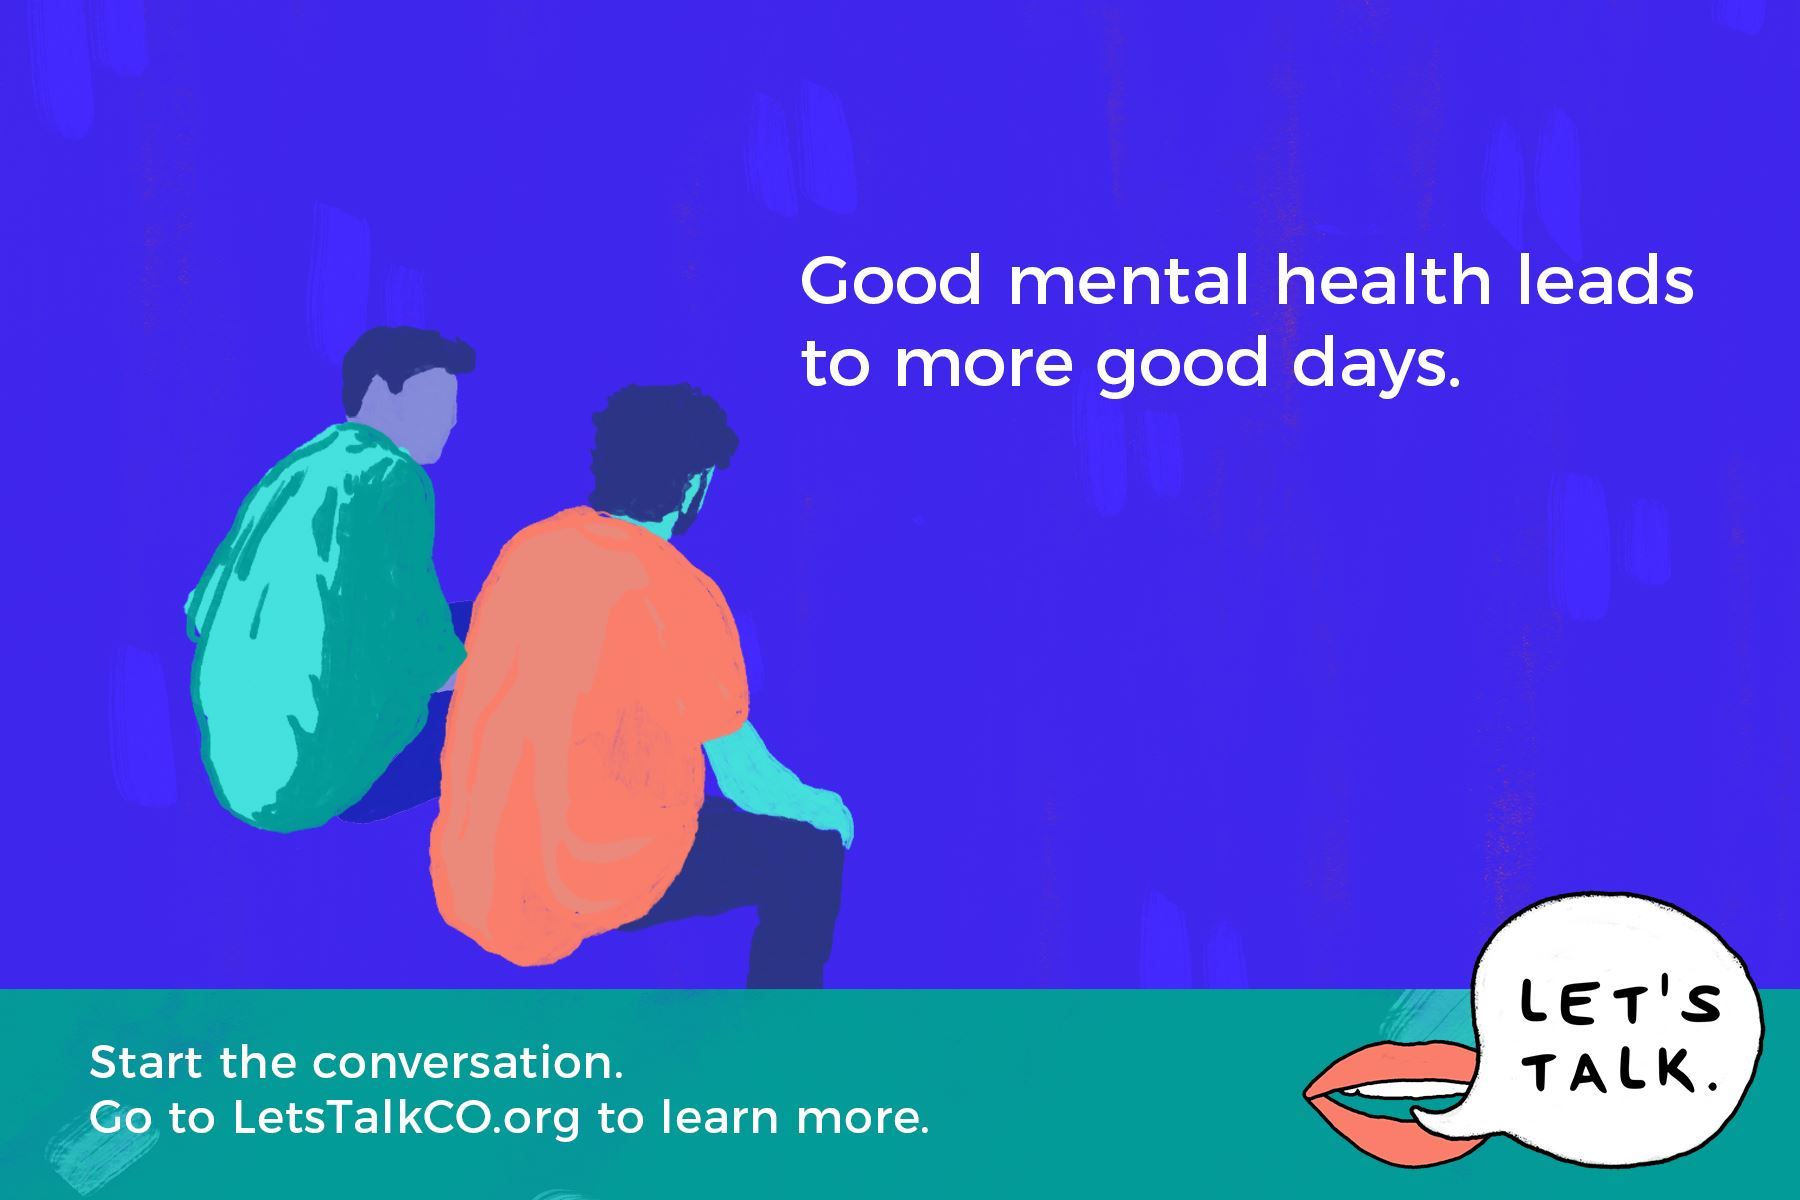 Start the conversation. Go to LetsTalkCO.org to learn more.